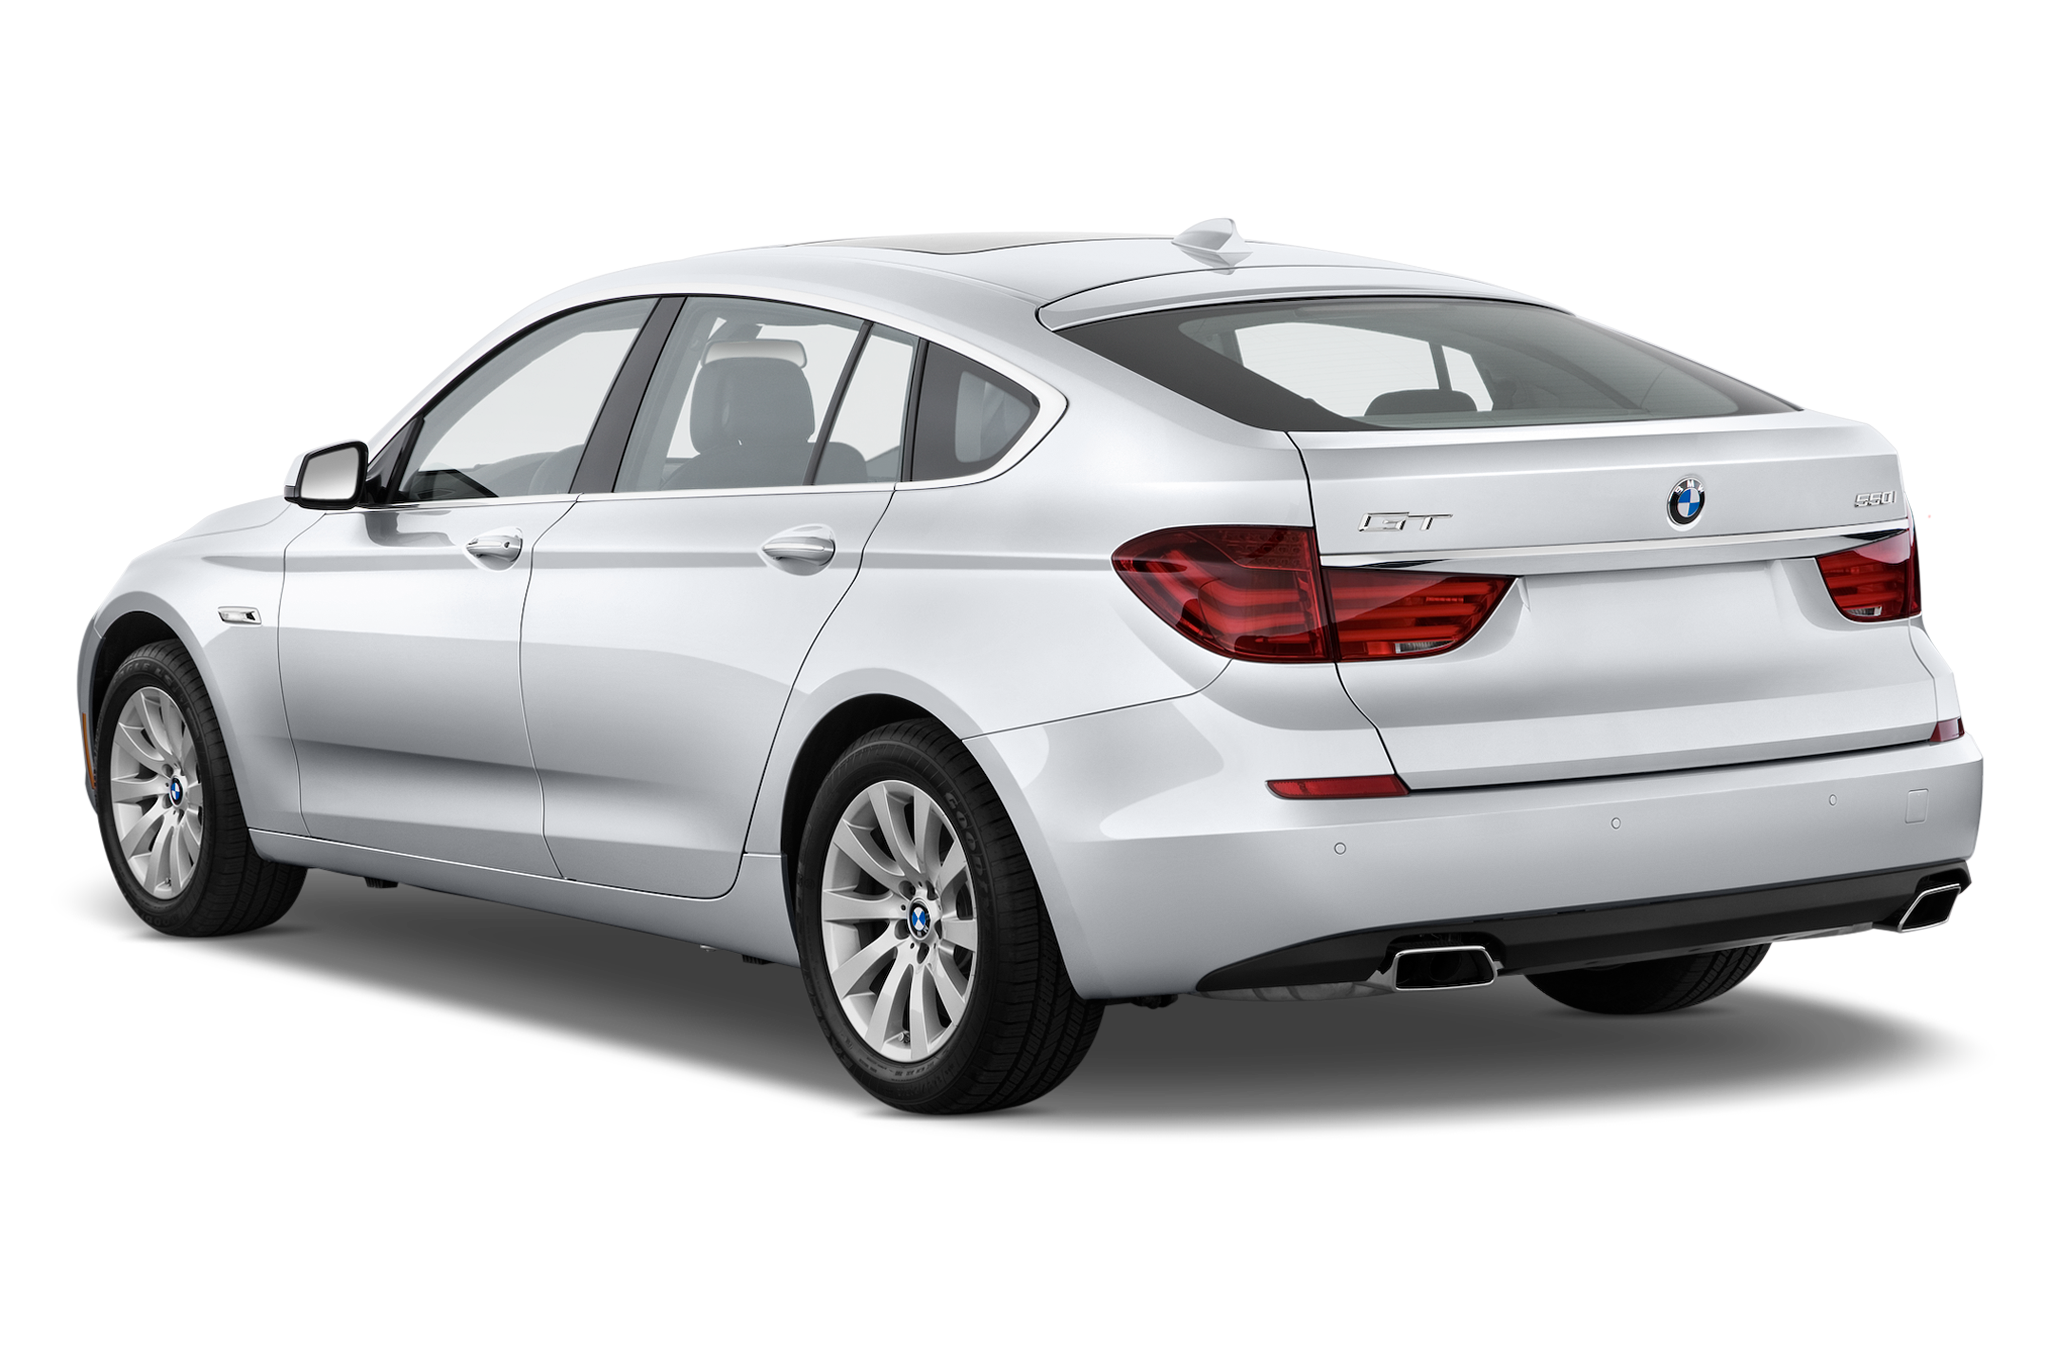 2010 BMW 5-series Gran Turismo - First Look Review - Automobile Magazine